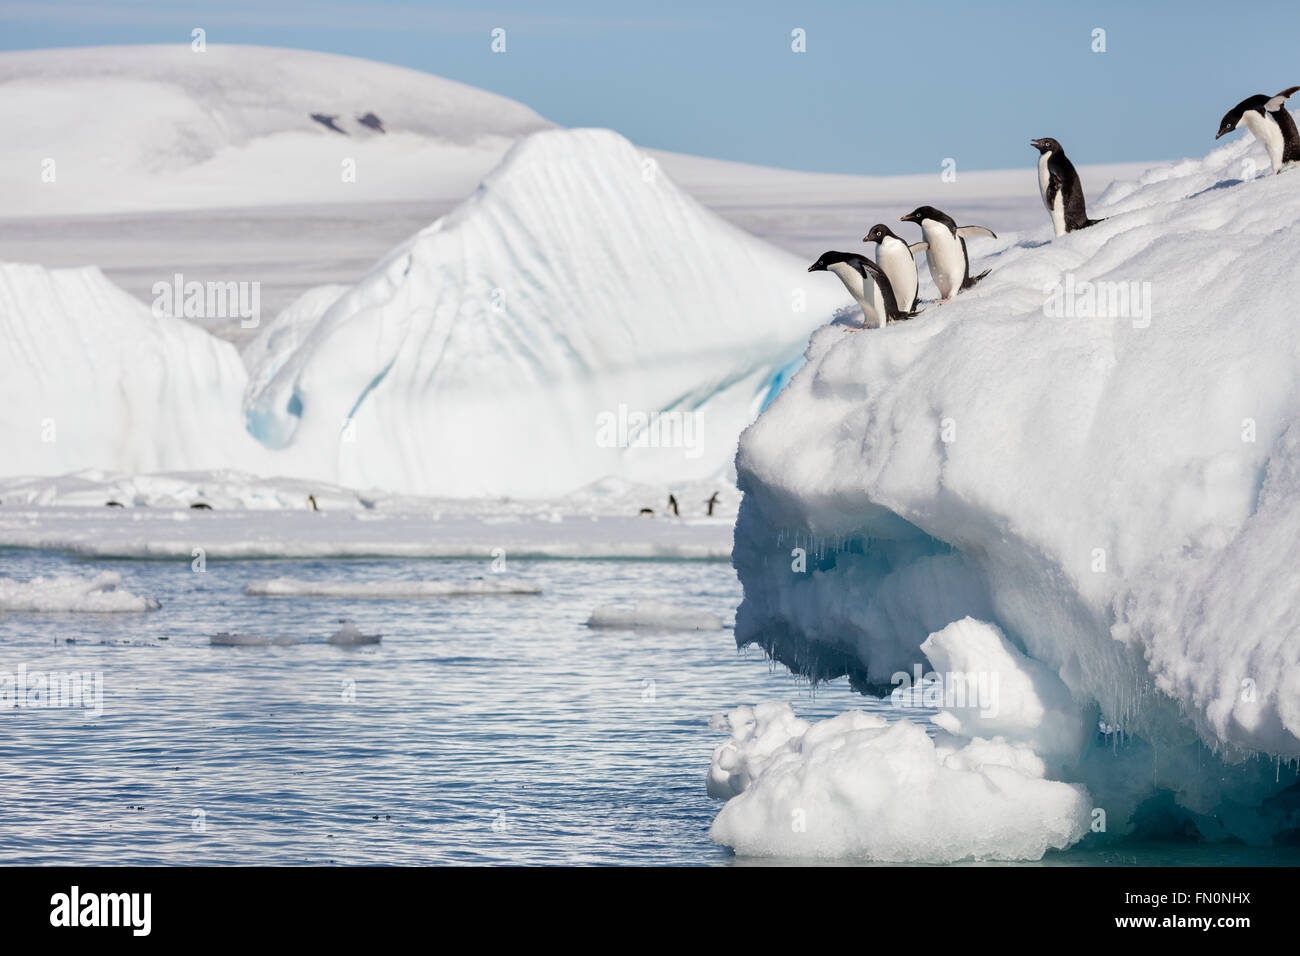 Antarctica, Antarctic peninsula, Brown Bluff. Adelie penguin, penguins diving off iceberg - Stock Image